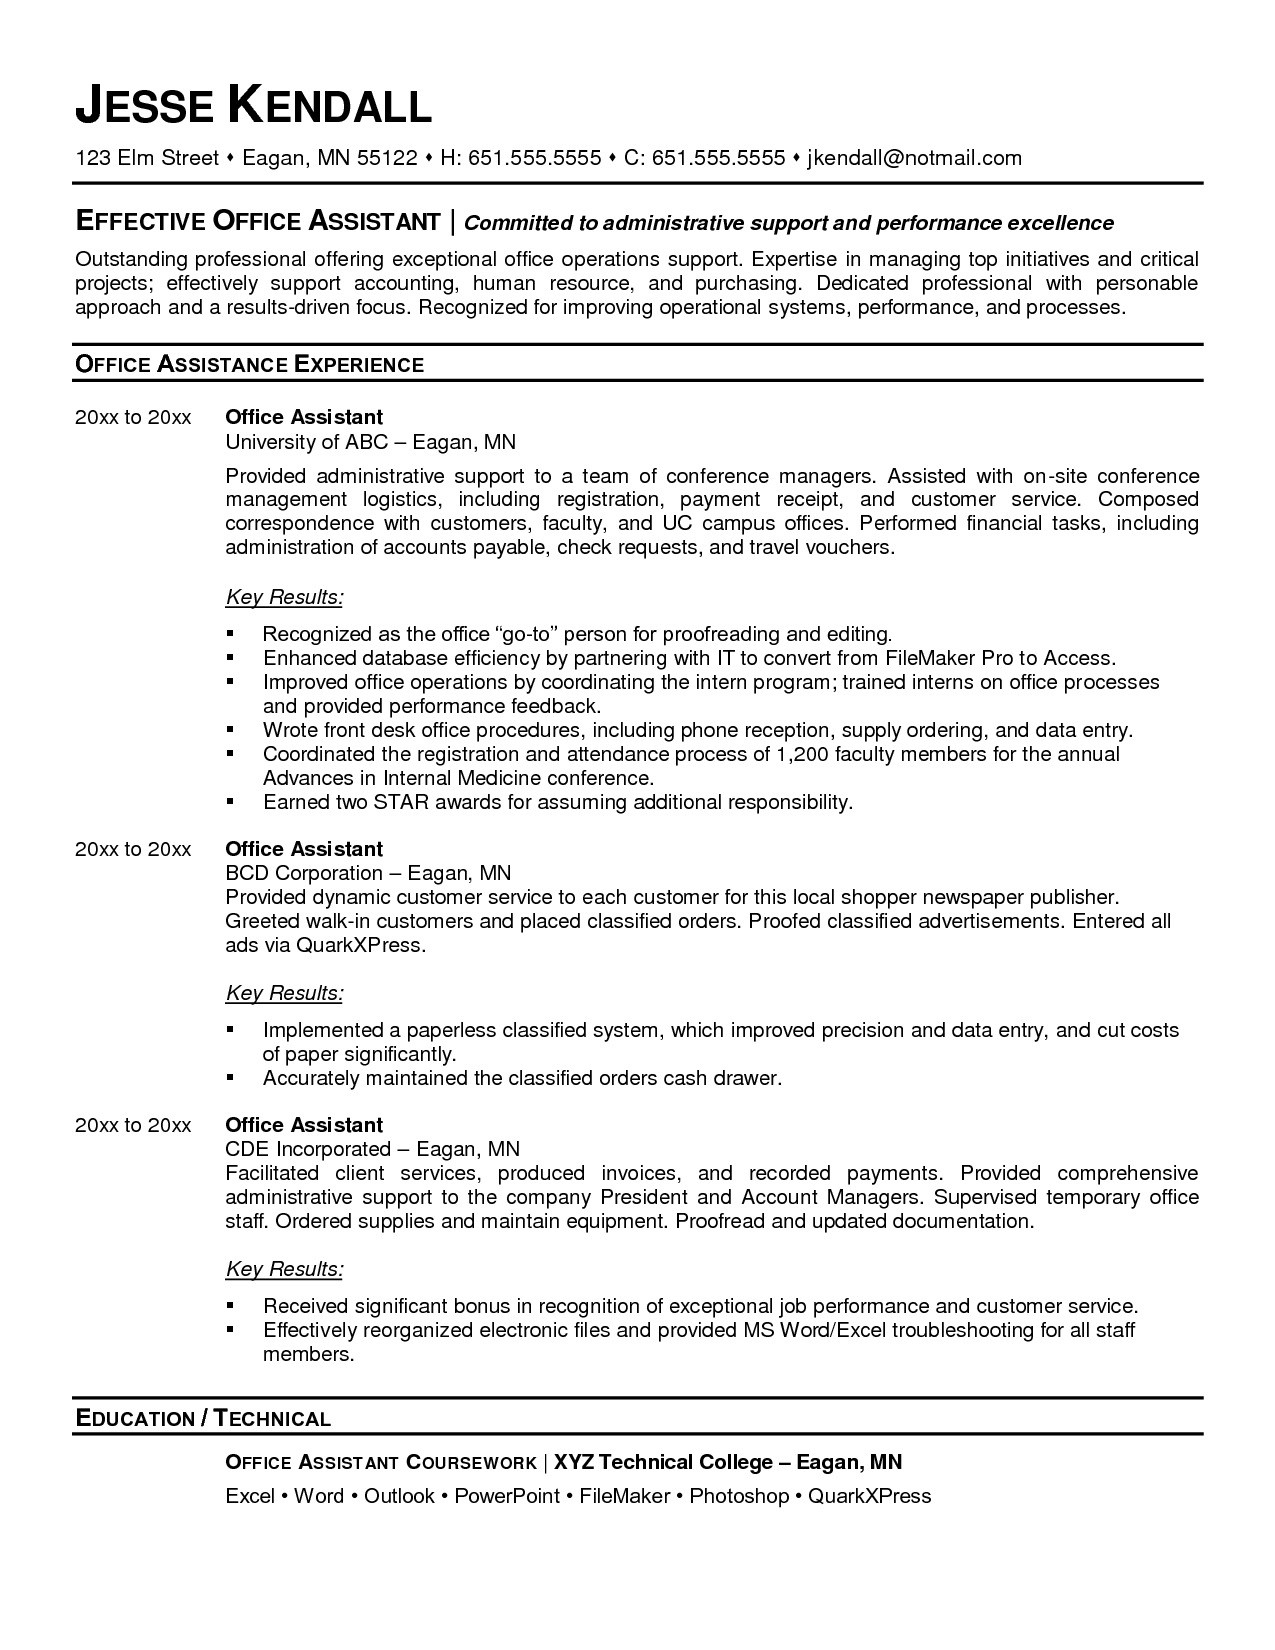 Medical Office Manager Resume Examples - Medical Fice Manager Resume Examples New Medical Fice assistant